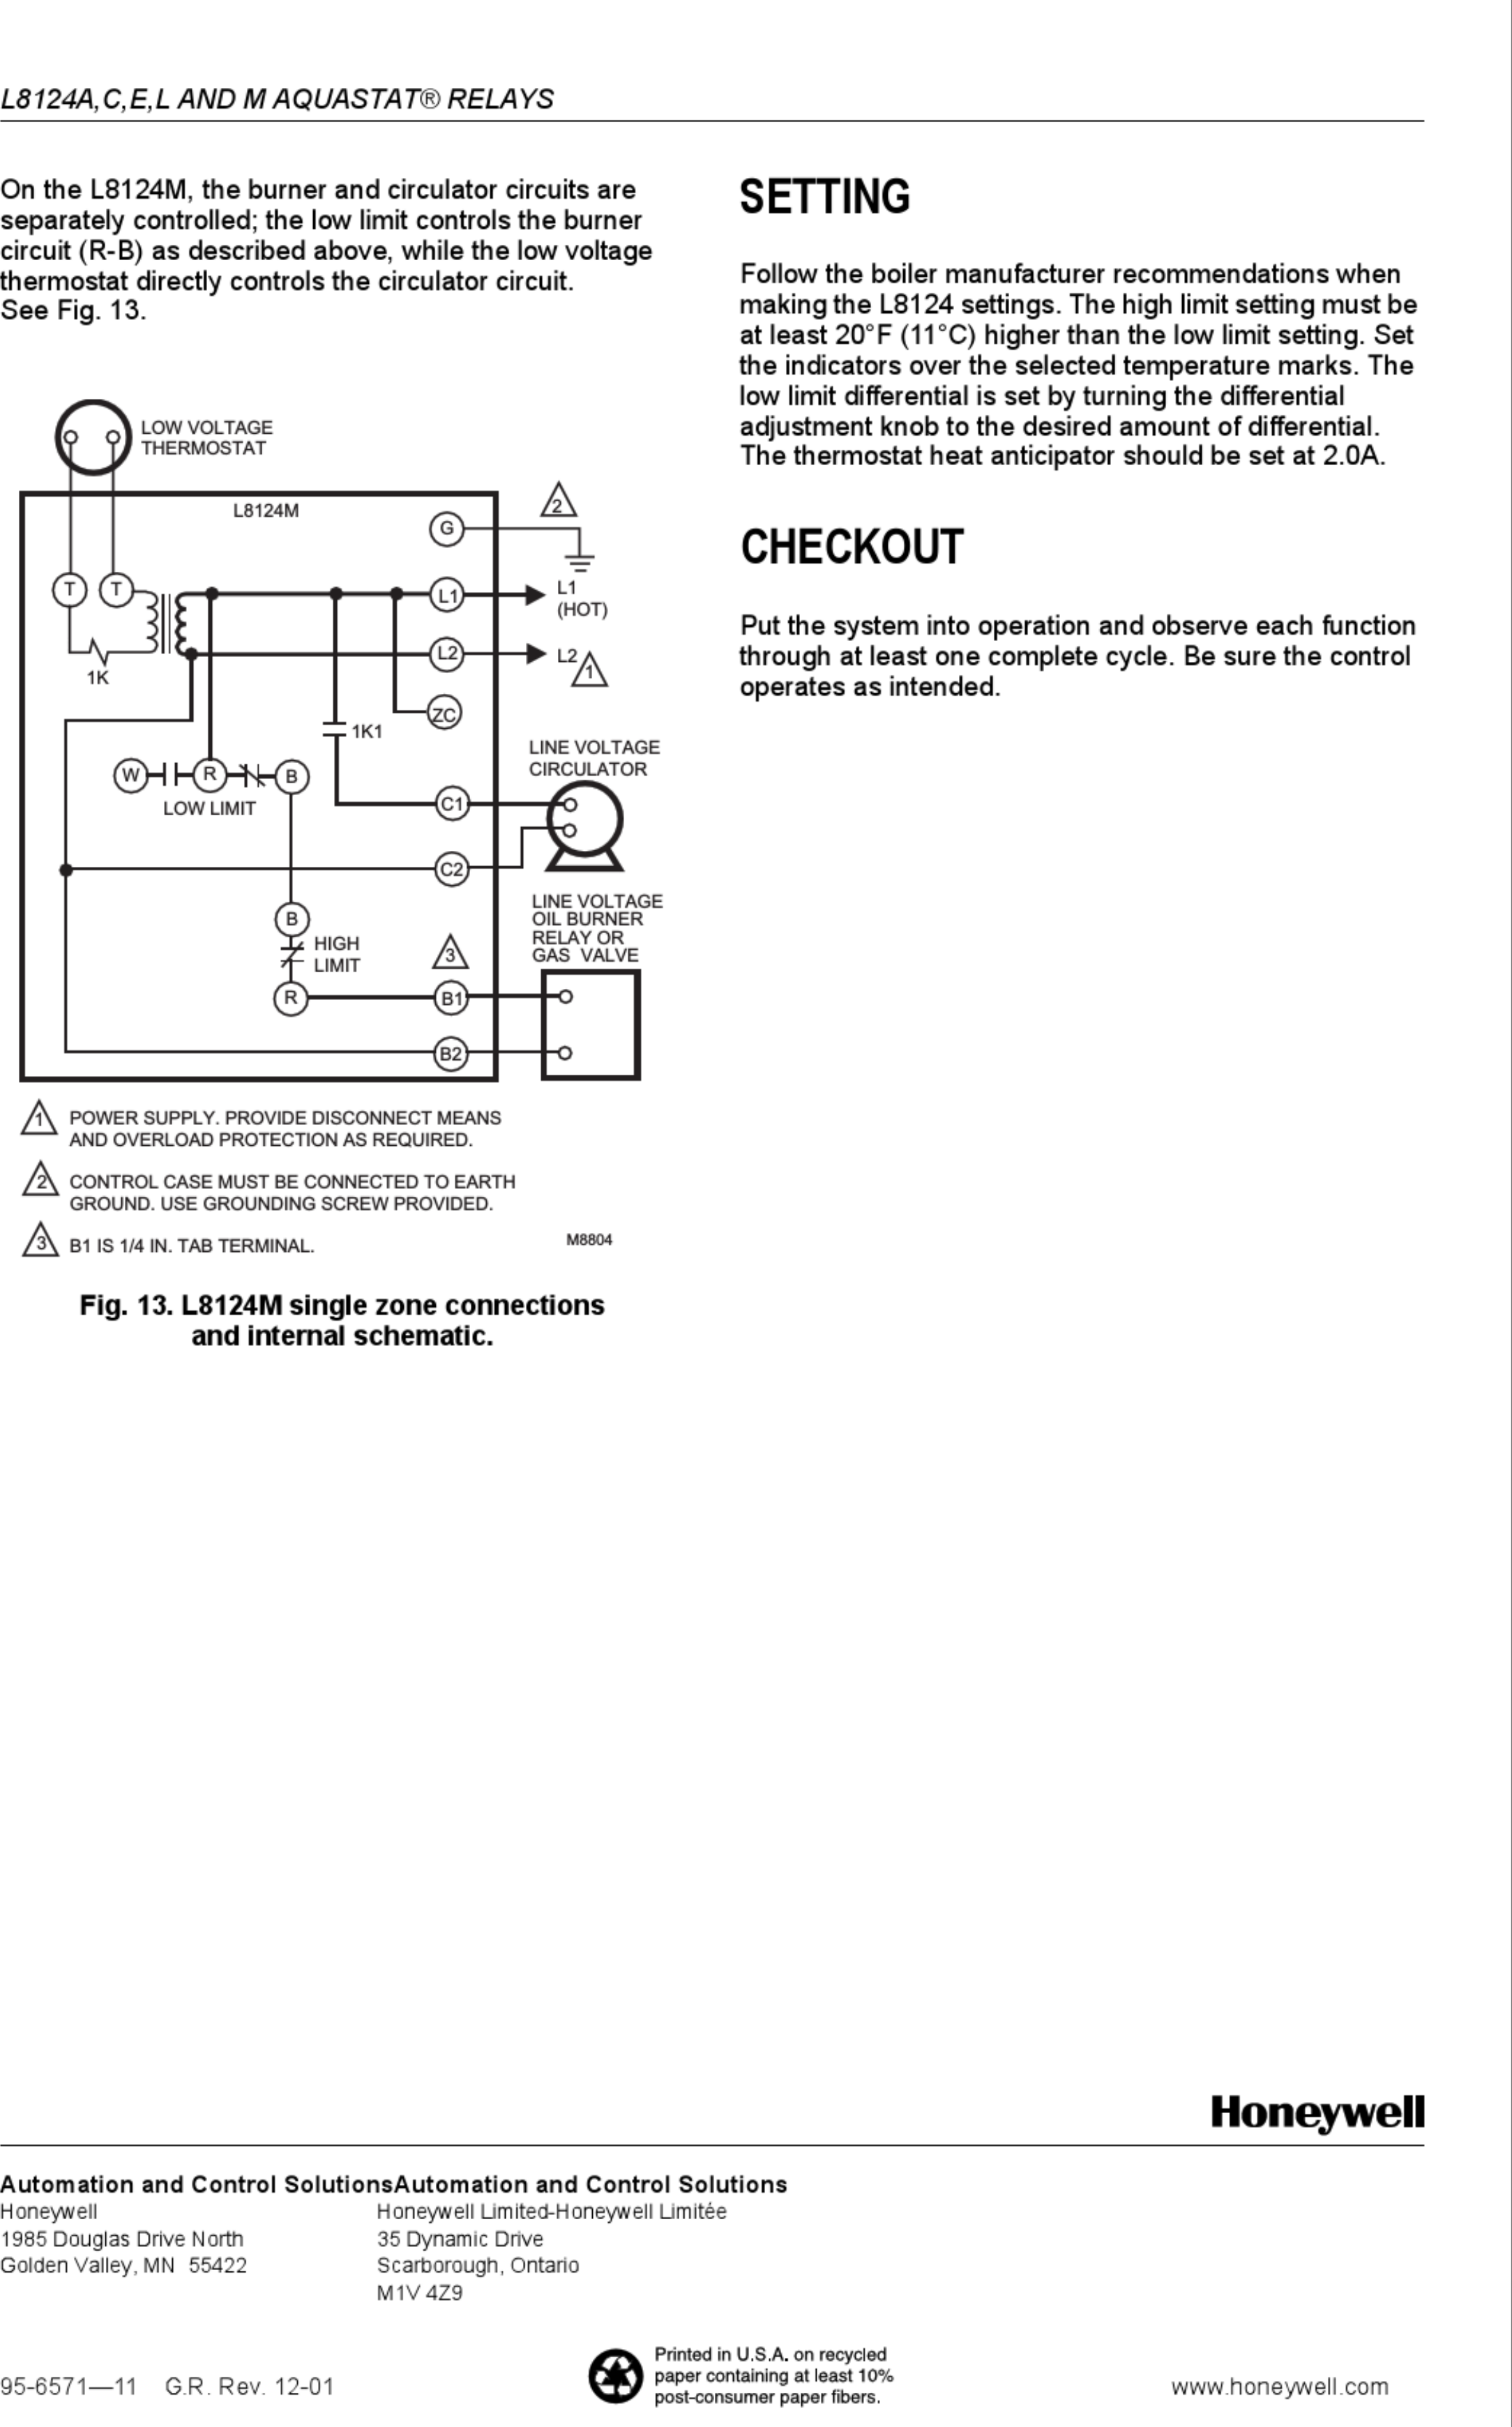 Page 8 of 8 - Honeywell Honeywell-Aquastat-L8124A-Installation-Instructions-Manual-1003208 User Manual